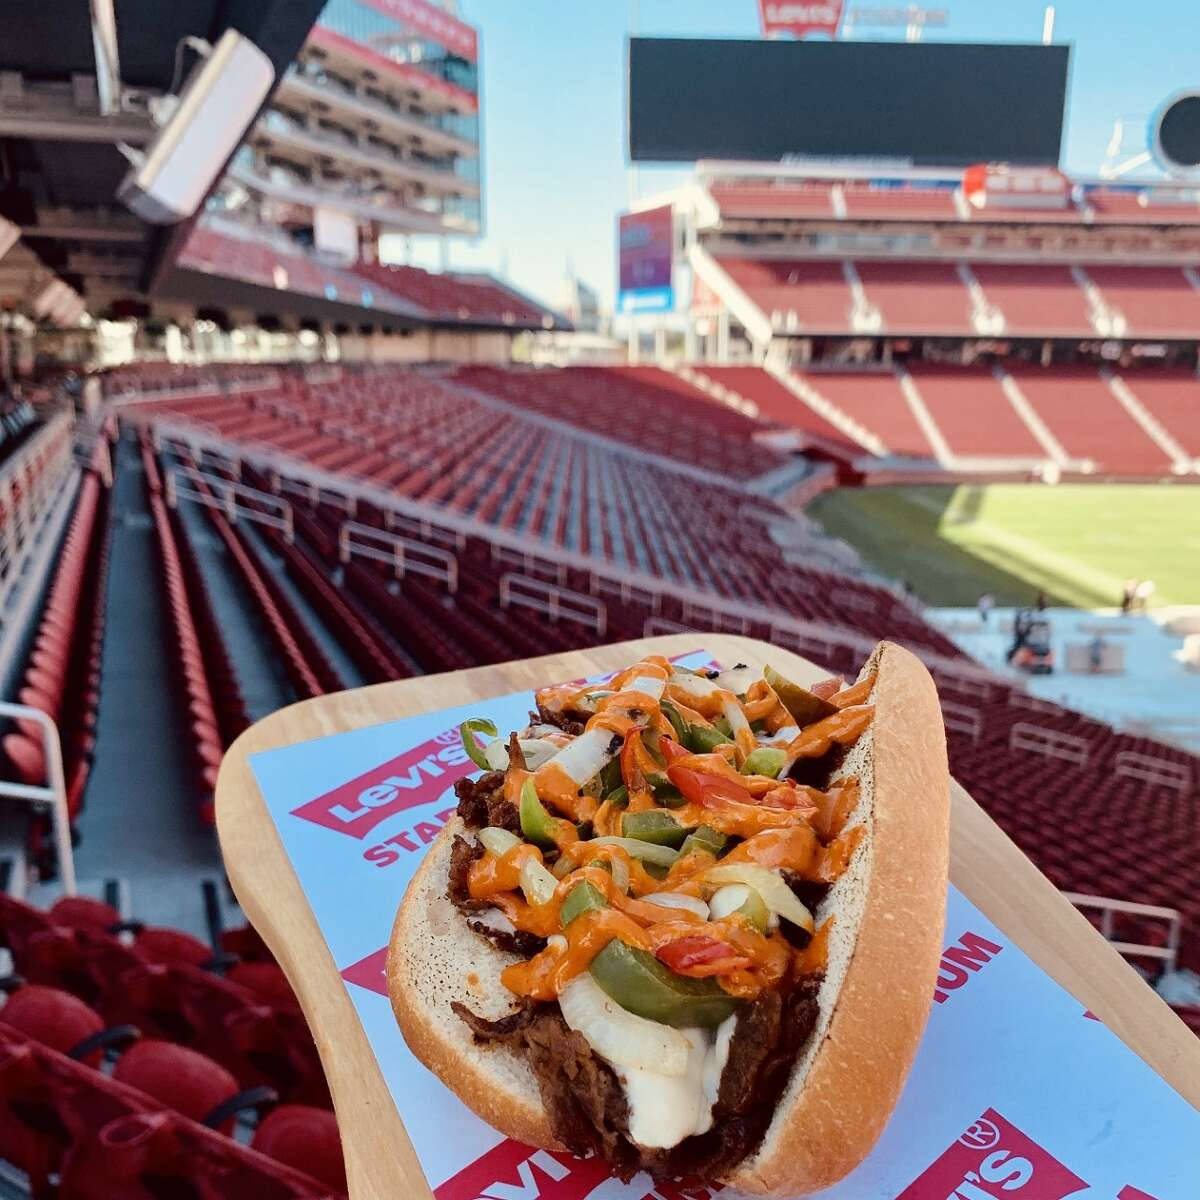 Bulgogi Cheese Steak (by Levy Restaurants) One of the newest food items at Levi Stadium includes a filling Bulgogi Cheese Steak that comes with sirloin, American cheese, sautéed peppers and onions, and gochujang aioli on a Le Boulanger hoagie roll.